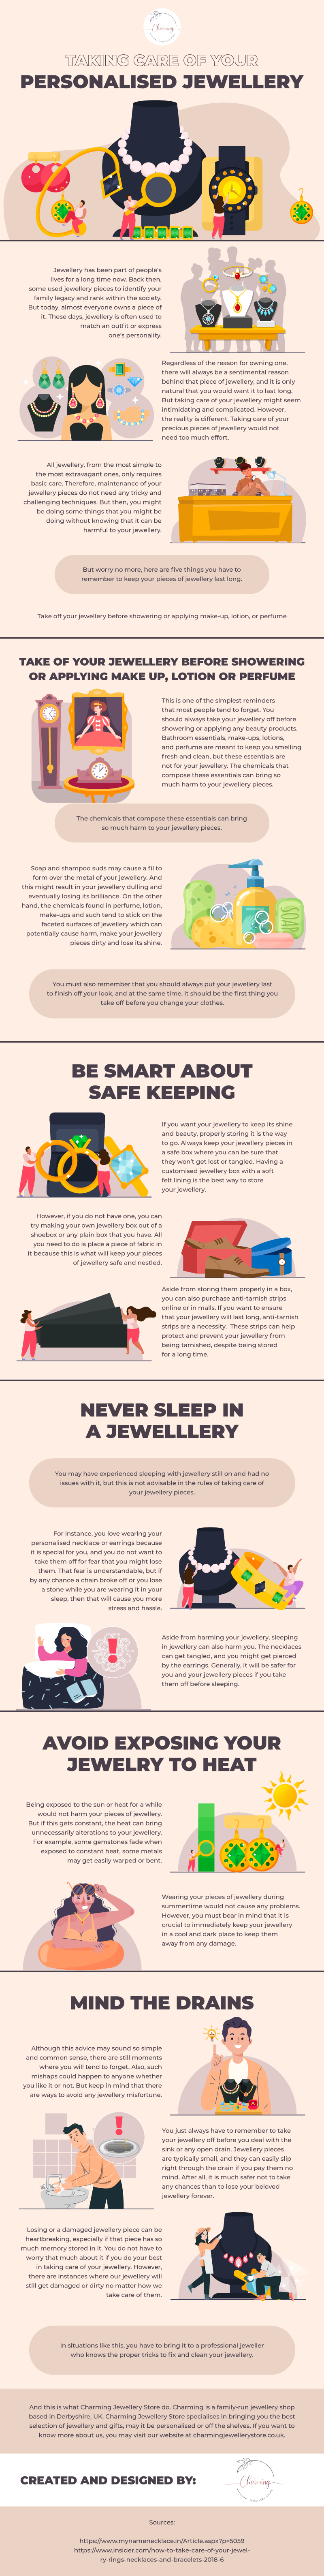 TAKING-CARE-OF-YOUR-PERSONALIZED-JEWELLERY-INFOGRAPHIC